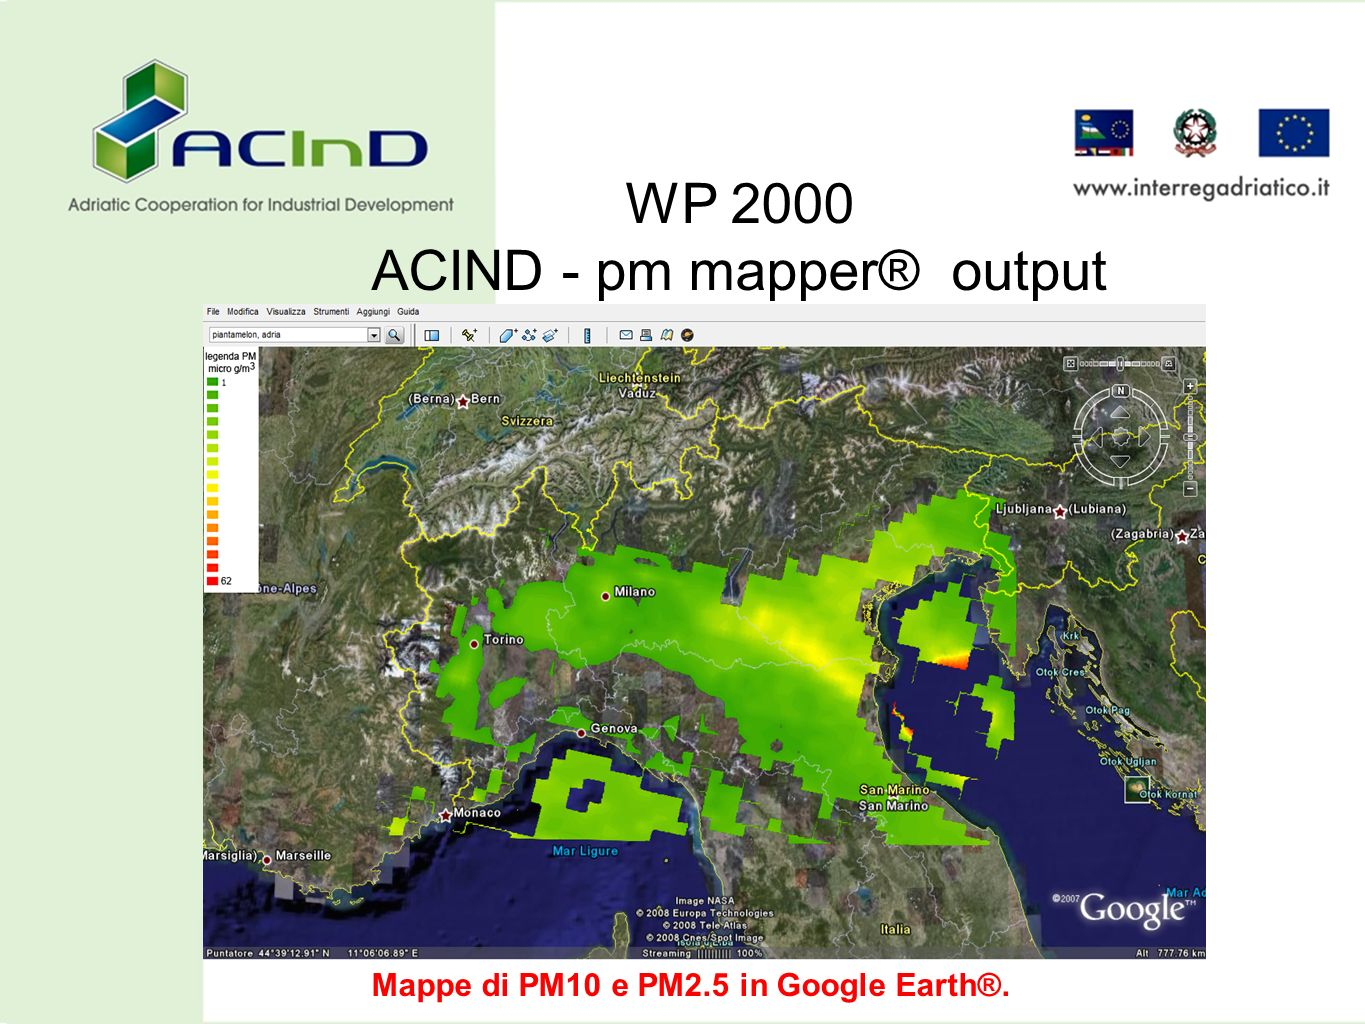 Mappe di PM10 e PM2.5 in Google Earth®.